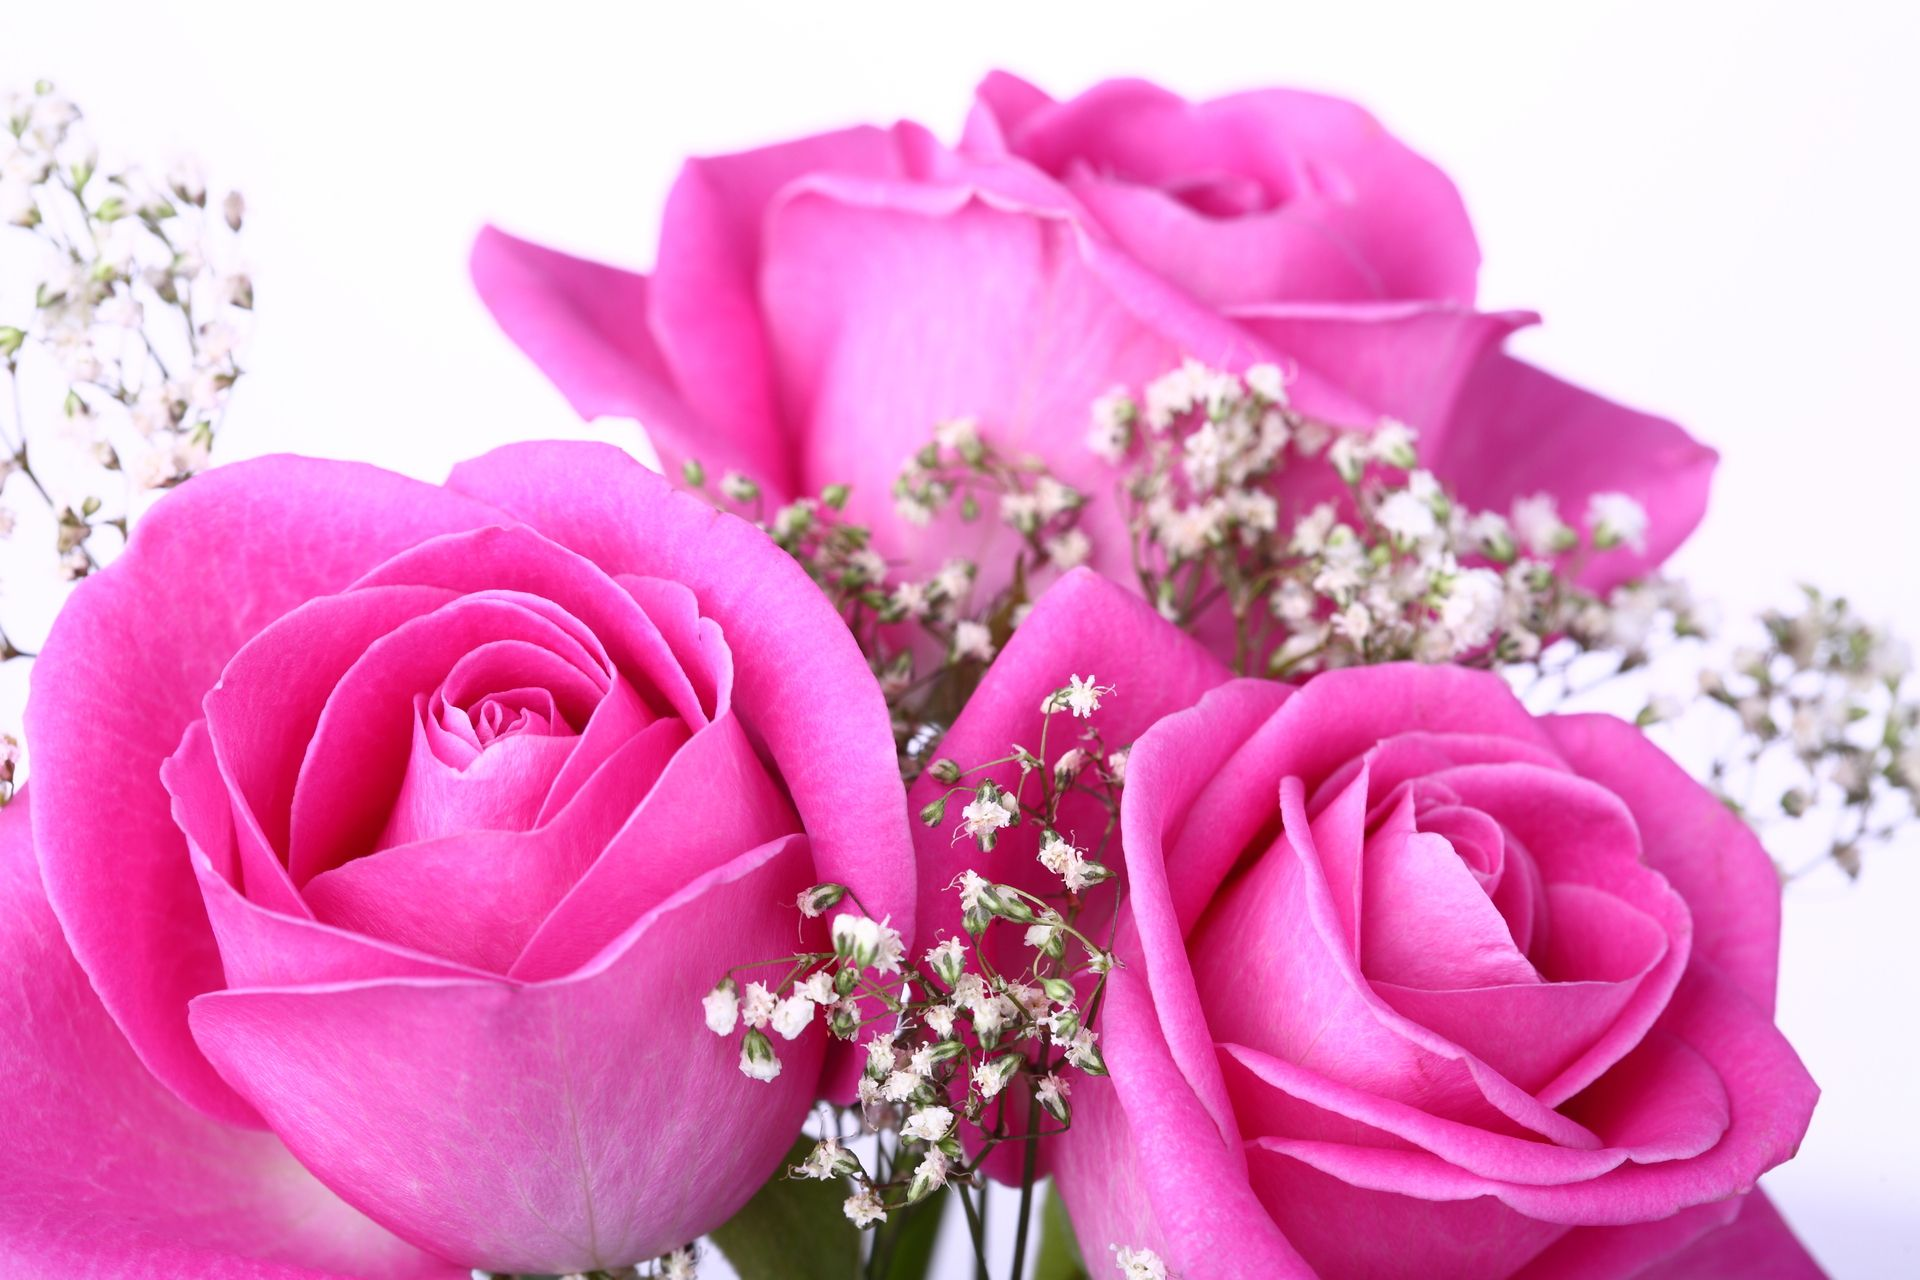 High Res Images for Mobile Screens Pink Flower, Pink